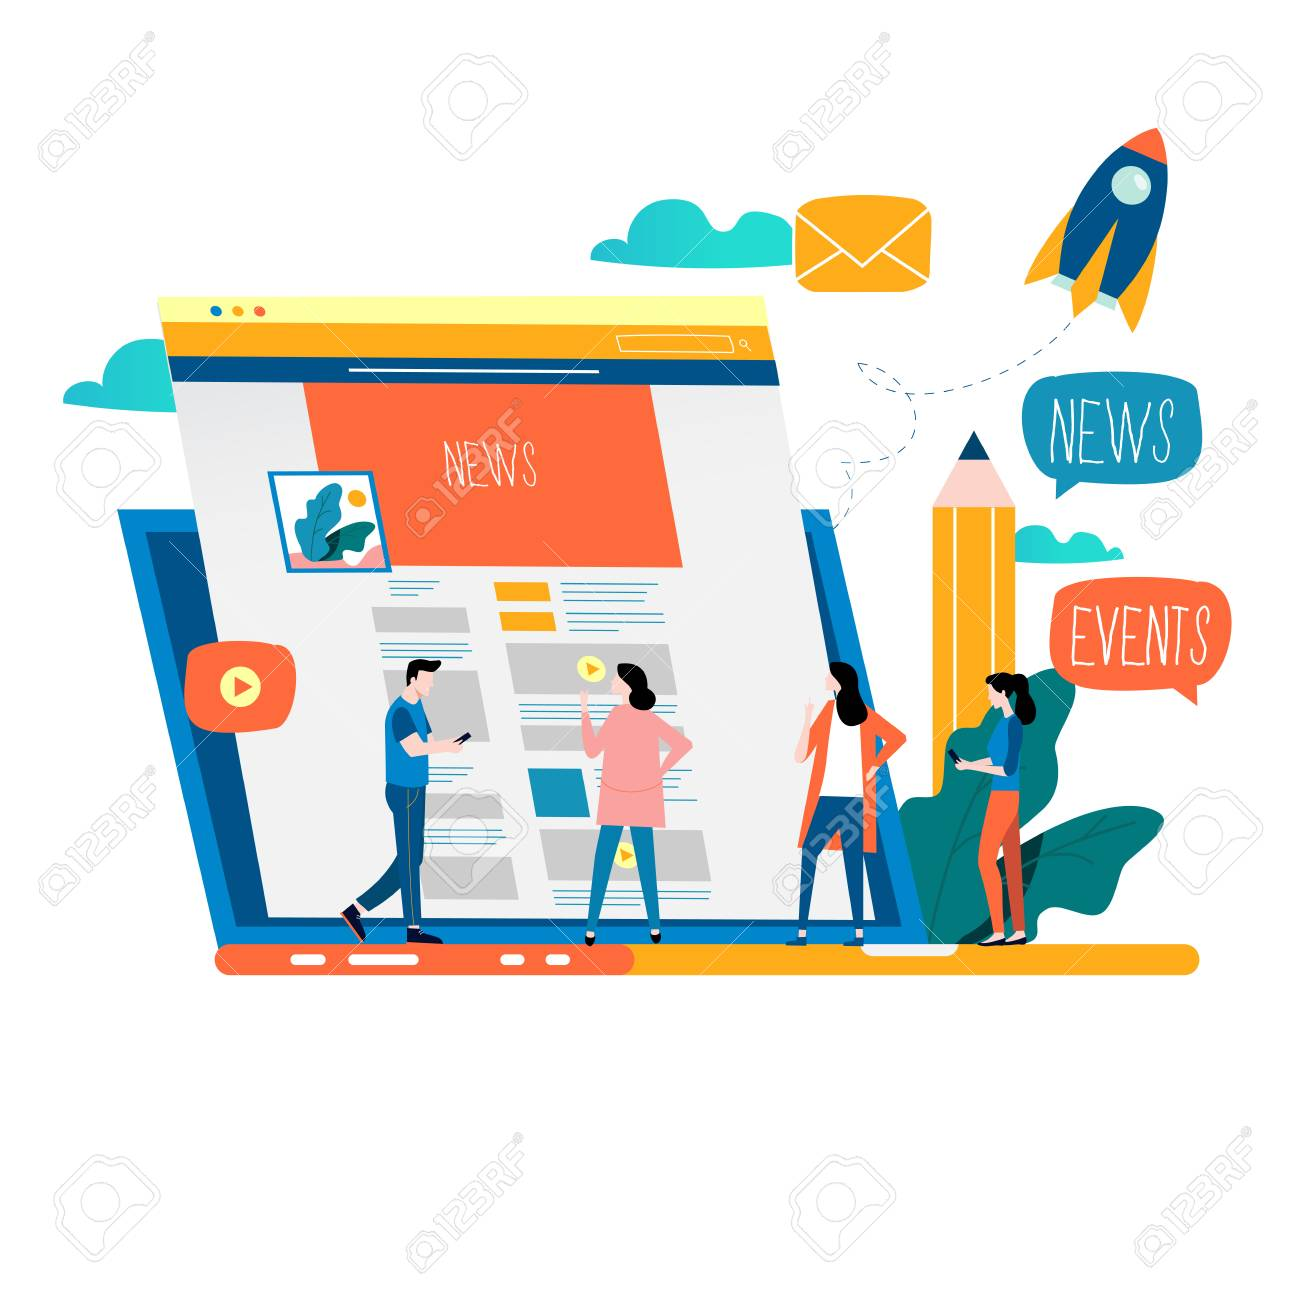 News update, online news, newspaper, news website flat vector illustration design. News webpage, information about events, activities, company information and announcements - 122214138